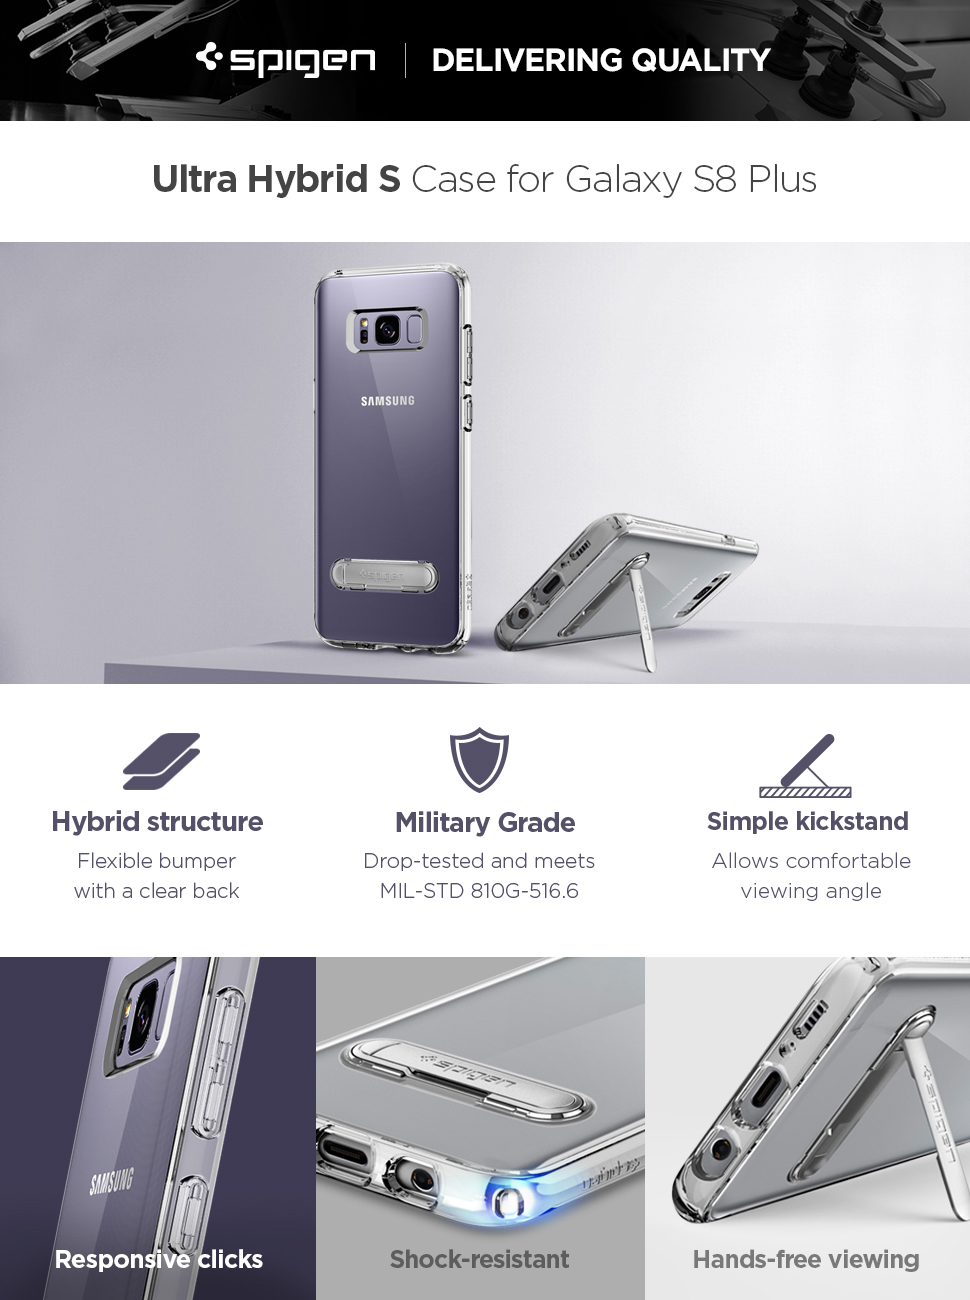 Spigen Ultra Hybrid S Galaxy S8 Plus Case With Air Series Samsung Note 8 Original Crystal Clear Looking For